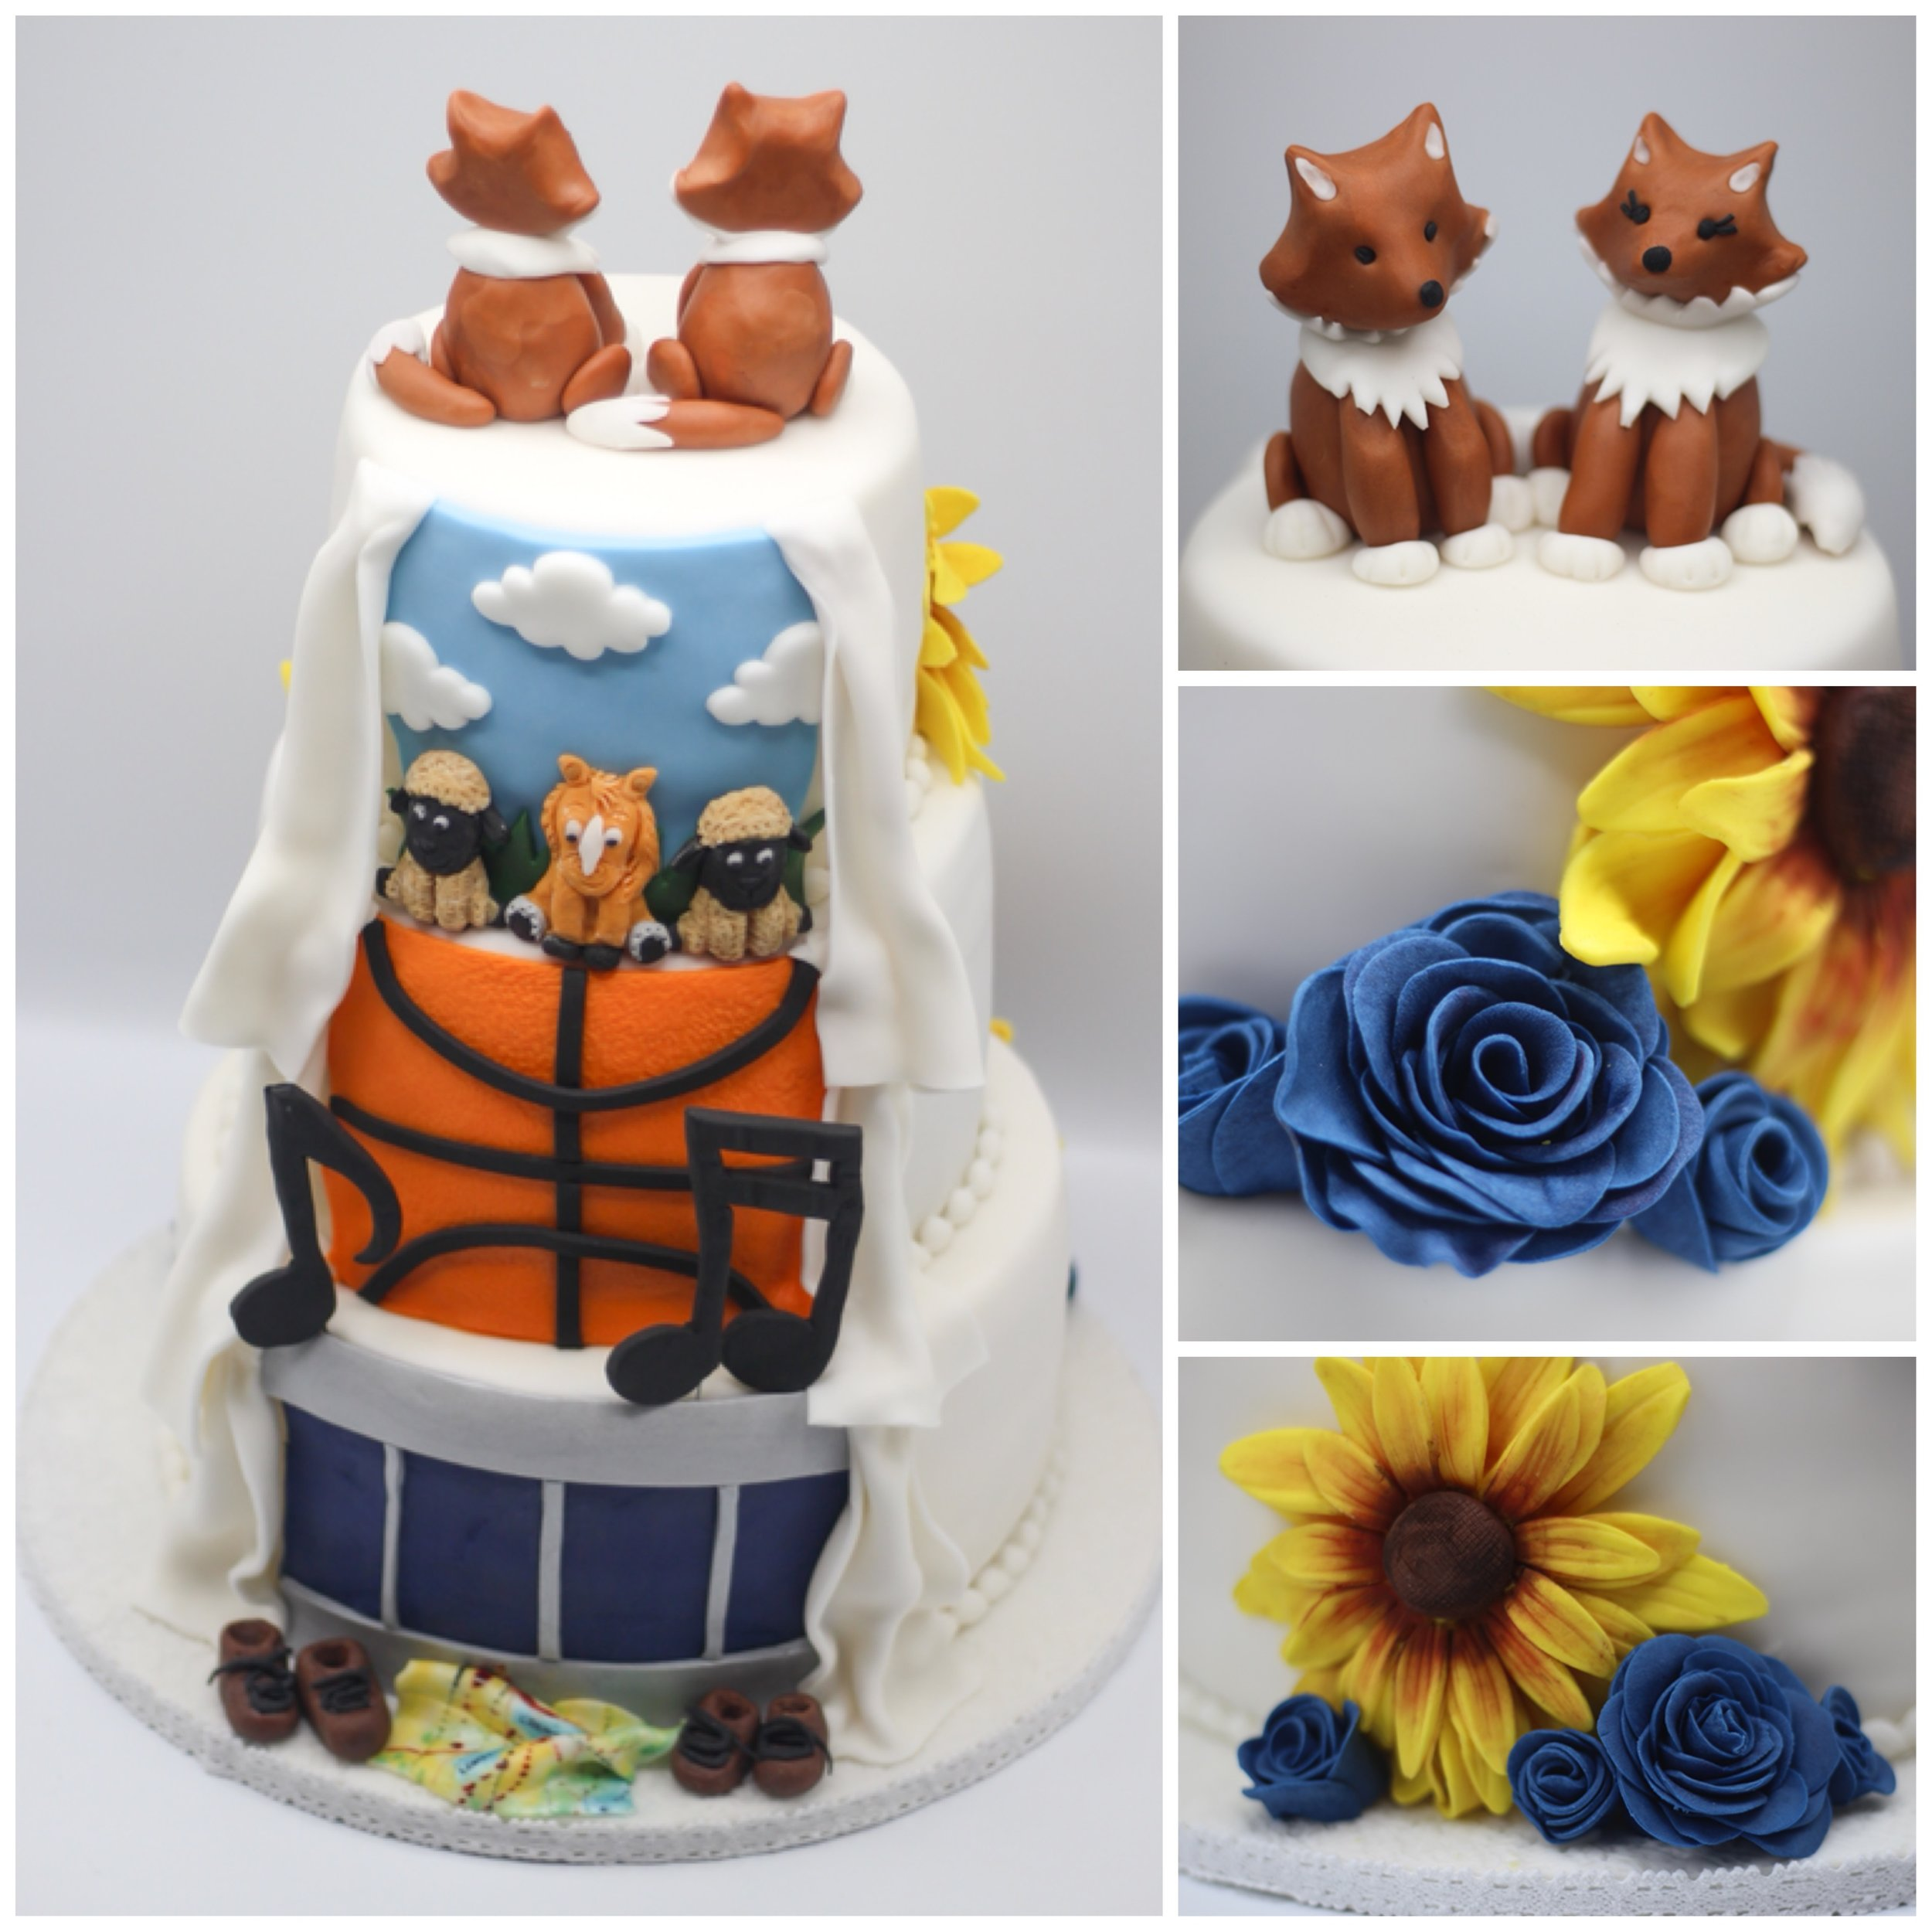 Multi-tiered cake - Multi-tiered cakes are not just for weddings! When designing a multi-tiered cake please use the prices published above for reference as there is no extra charge for the internal cake dowels and supports or the process of stacking.